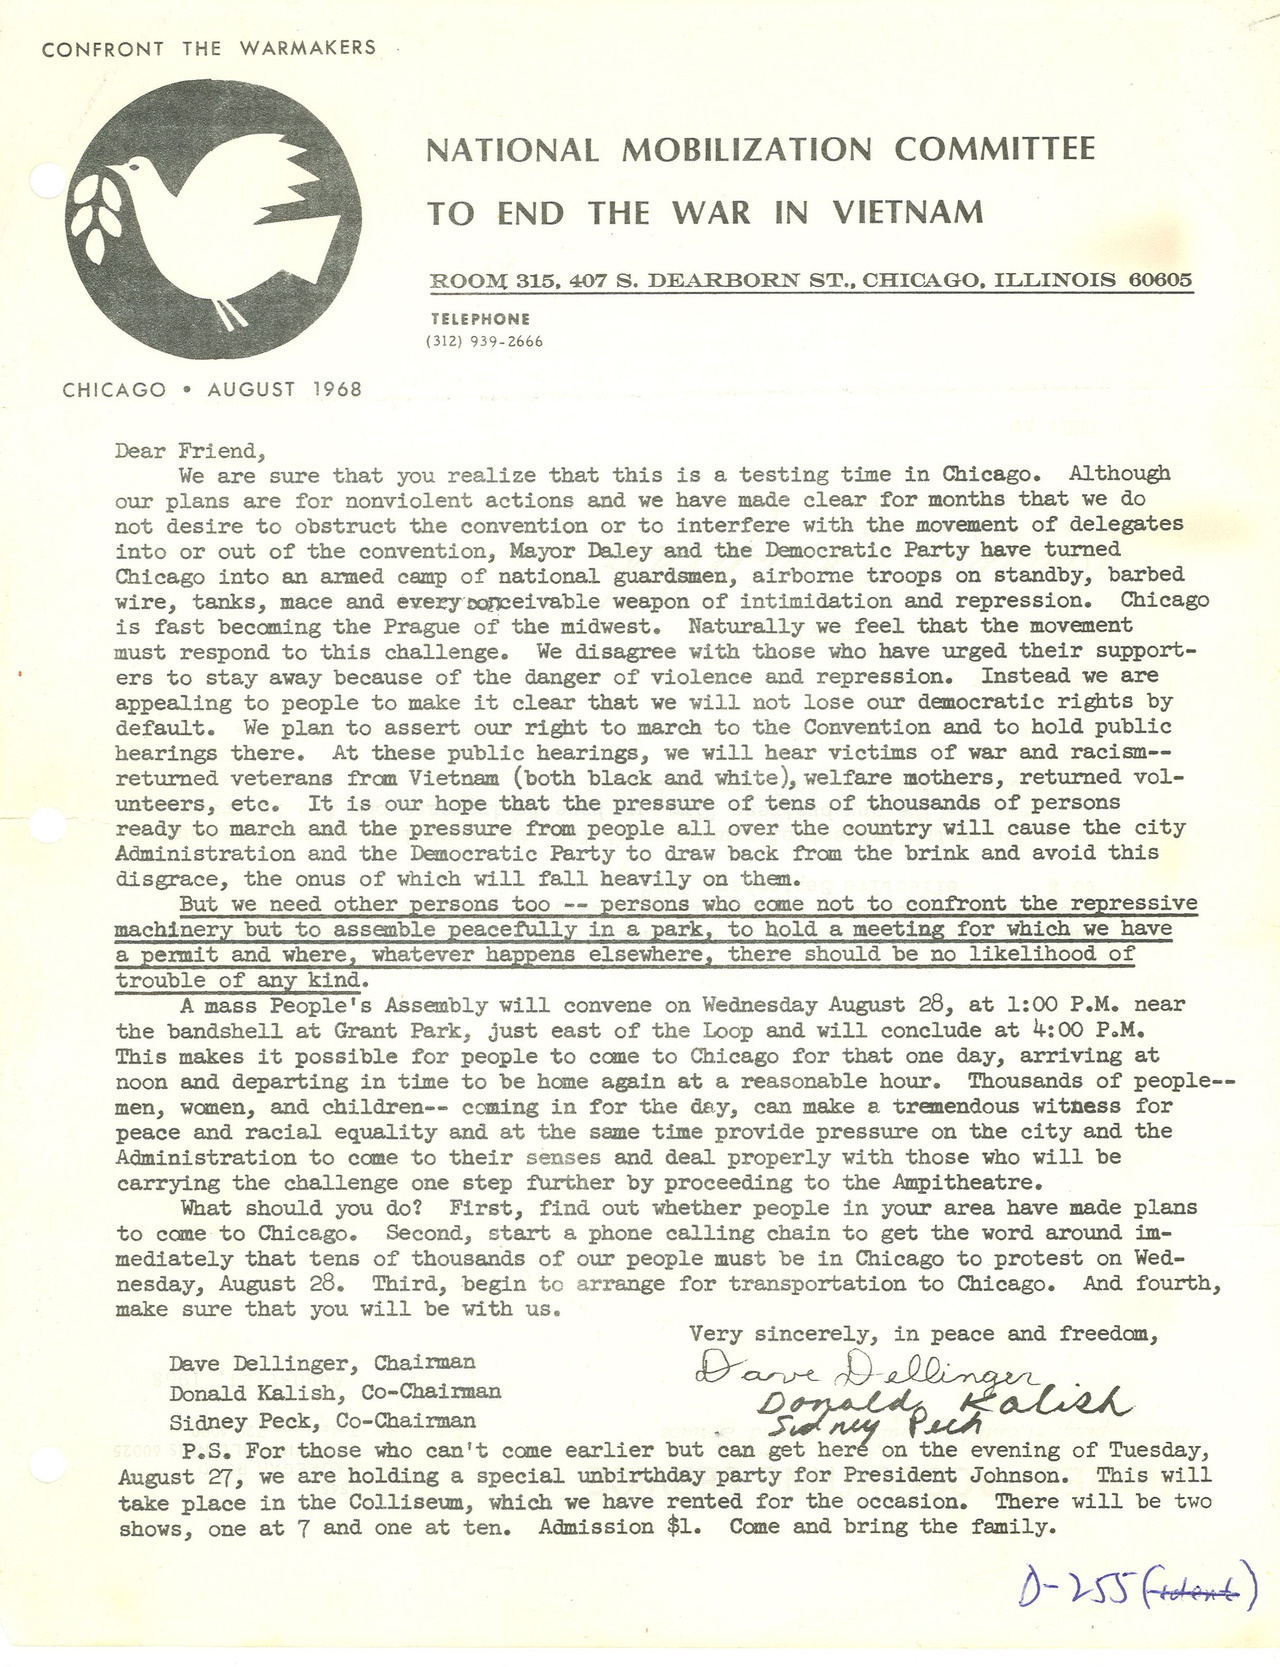 "Letter from National Mobilization Committee to End the War in Vietnam, 8/1/1968 Records of District Courts of the United States; exhibit from criminal case 69CR180, United States v. Dellinger, et al.  This criminal case file relates to the case in which the defendants, David Dellinger, Rennie Davis, Tom Hayden, Abbie Hoffman, Jerry Rubin, Lee Weiner, John Froines, and Bobby Seale (aka the ""Chicago Eight,"" later the ""Chicago Seven"") were accused of inciting riots during the Democratic National Convention of 1968. On March 20, 1969, the grand jury returned indictments on the eight persons on charges of conspiracy to travel in interstate commerce with the intent to incite a riot, in violation of the Anti-Riot Act. Six of the defendants were indicted on individual charges of traveling in interstate commerce with the intent to incite a riot, in violation of the Anti-Riot Act. The trial of these individuals began on September 24, 1969 and lasted 13 months. On November 5, Judge Hoffman sentenced Bobby Seale to four years in prison for contempt of court and declared a mistrial in the prosecution of Seale. The case file includes the transcript of the proceedings, an indictment, appearances, bench warrants, citations, dockets, mandates, motions, notice of appeal, petitions, orders, statement of proceedings, subpoenas, and a verdict. via DocsTeach"